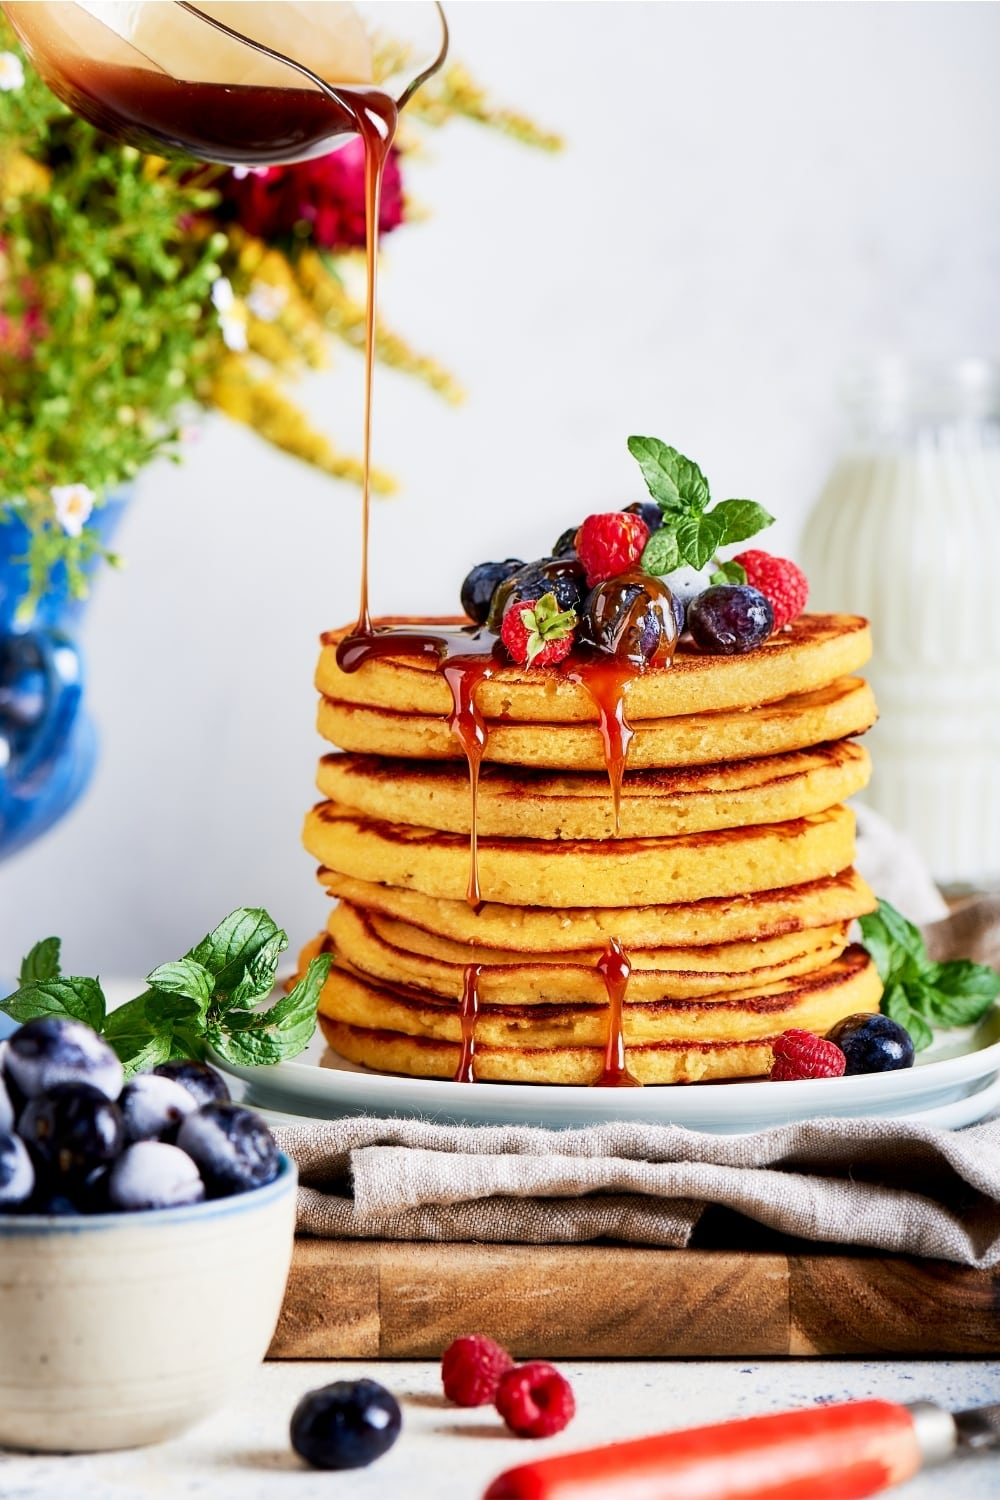 A cream cheese pancakes stacked on top of one another on a white plate that is on a gray tablecloth and a wooden cutting board and a white counter. A glass pitcher is drizzling syrup on top of the pancakes and there are a few blueberries and raspberries on the top pancake.